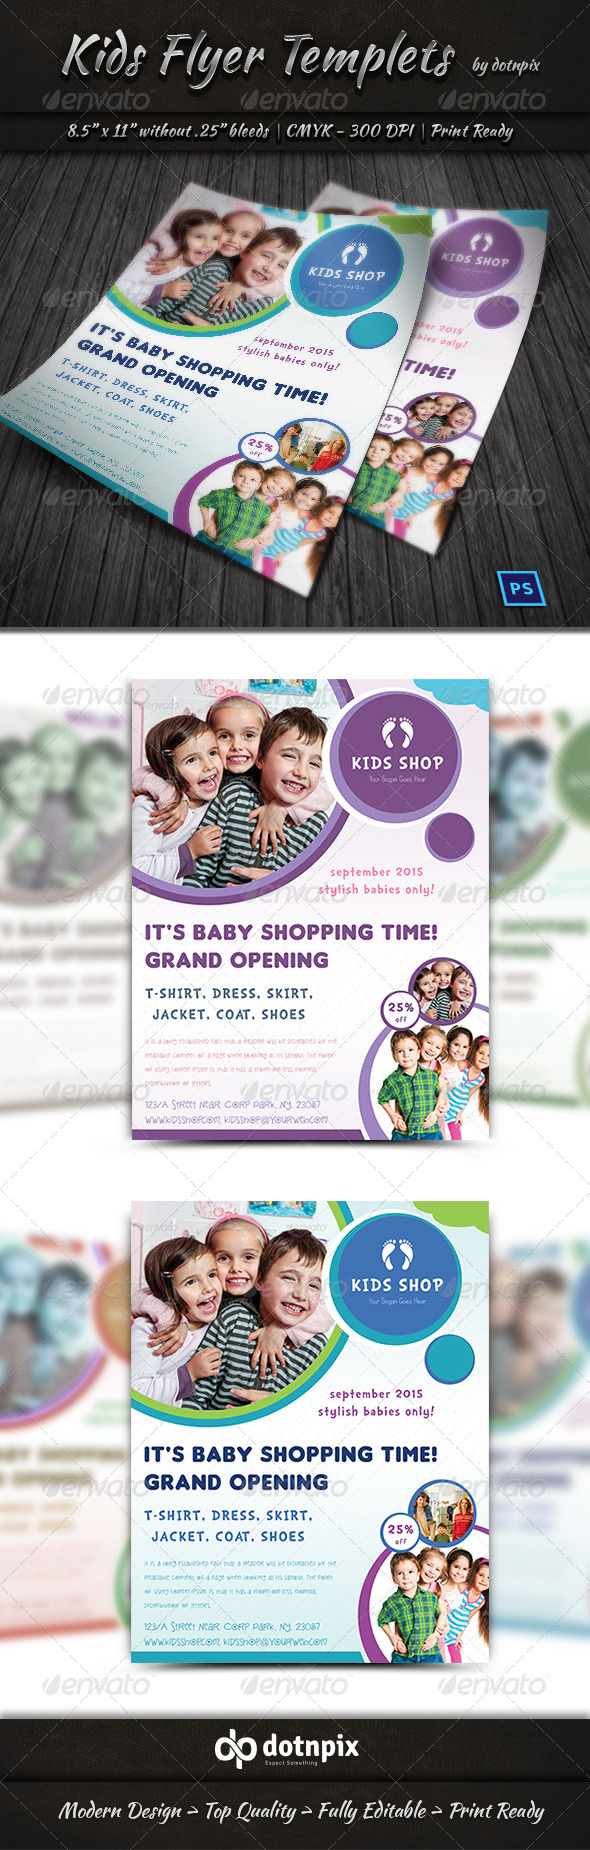 GraphicRiver Kids Flyer Templets 7431257